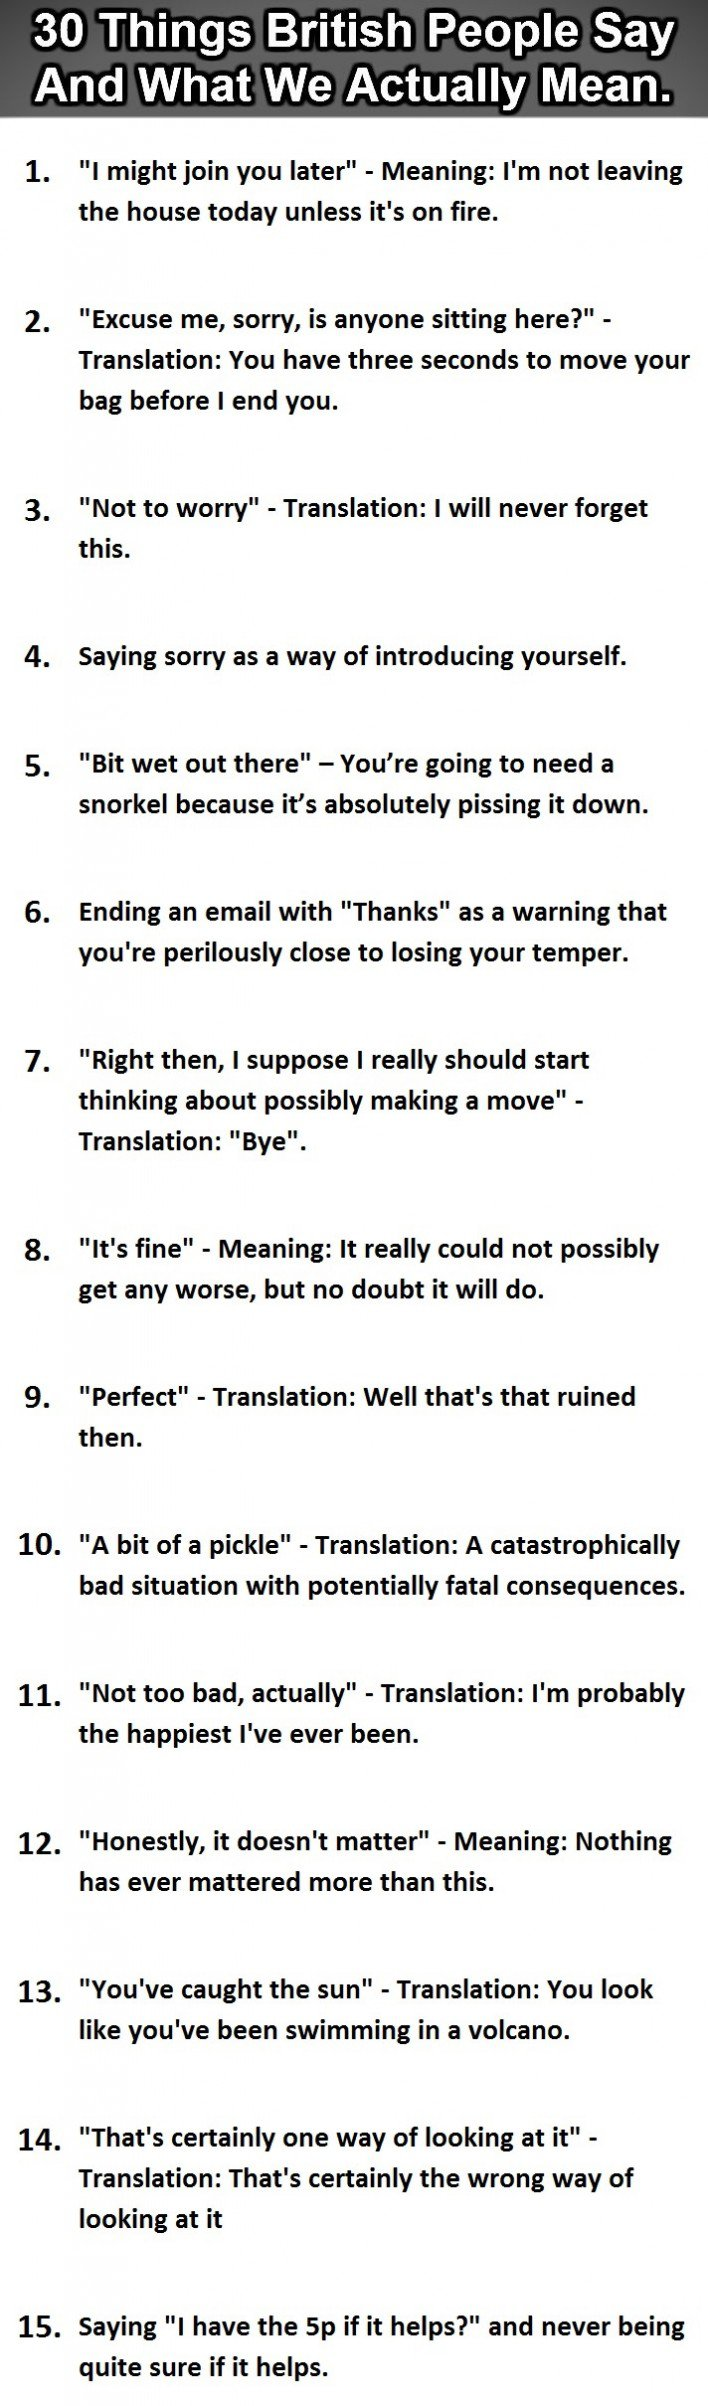 Things British People Say Vs. What They Actually Mean-1